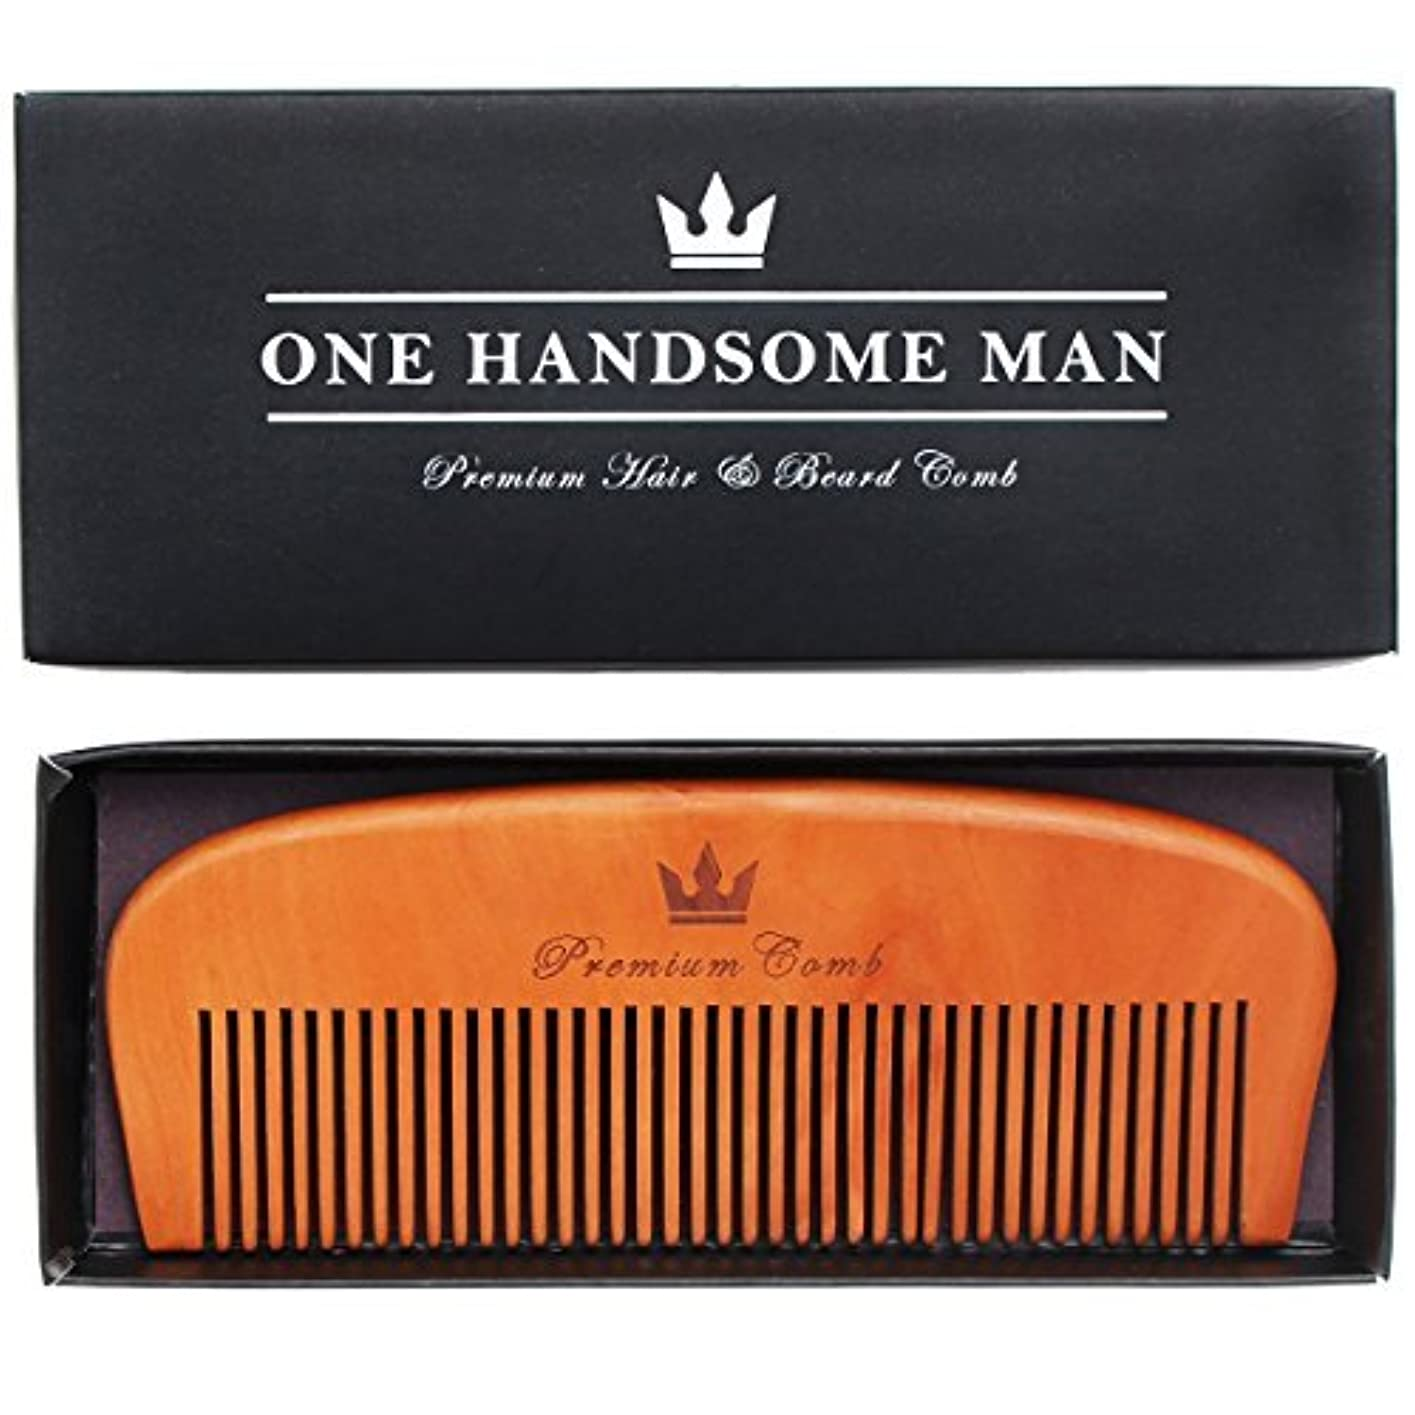 持続的キャリッジ凶暴なPremium Hair and Beard Comb - Quality Design with Gift Box. Perfect for Beards, Mustaches, or Head Hair. [並行輸入品]